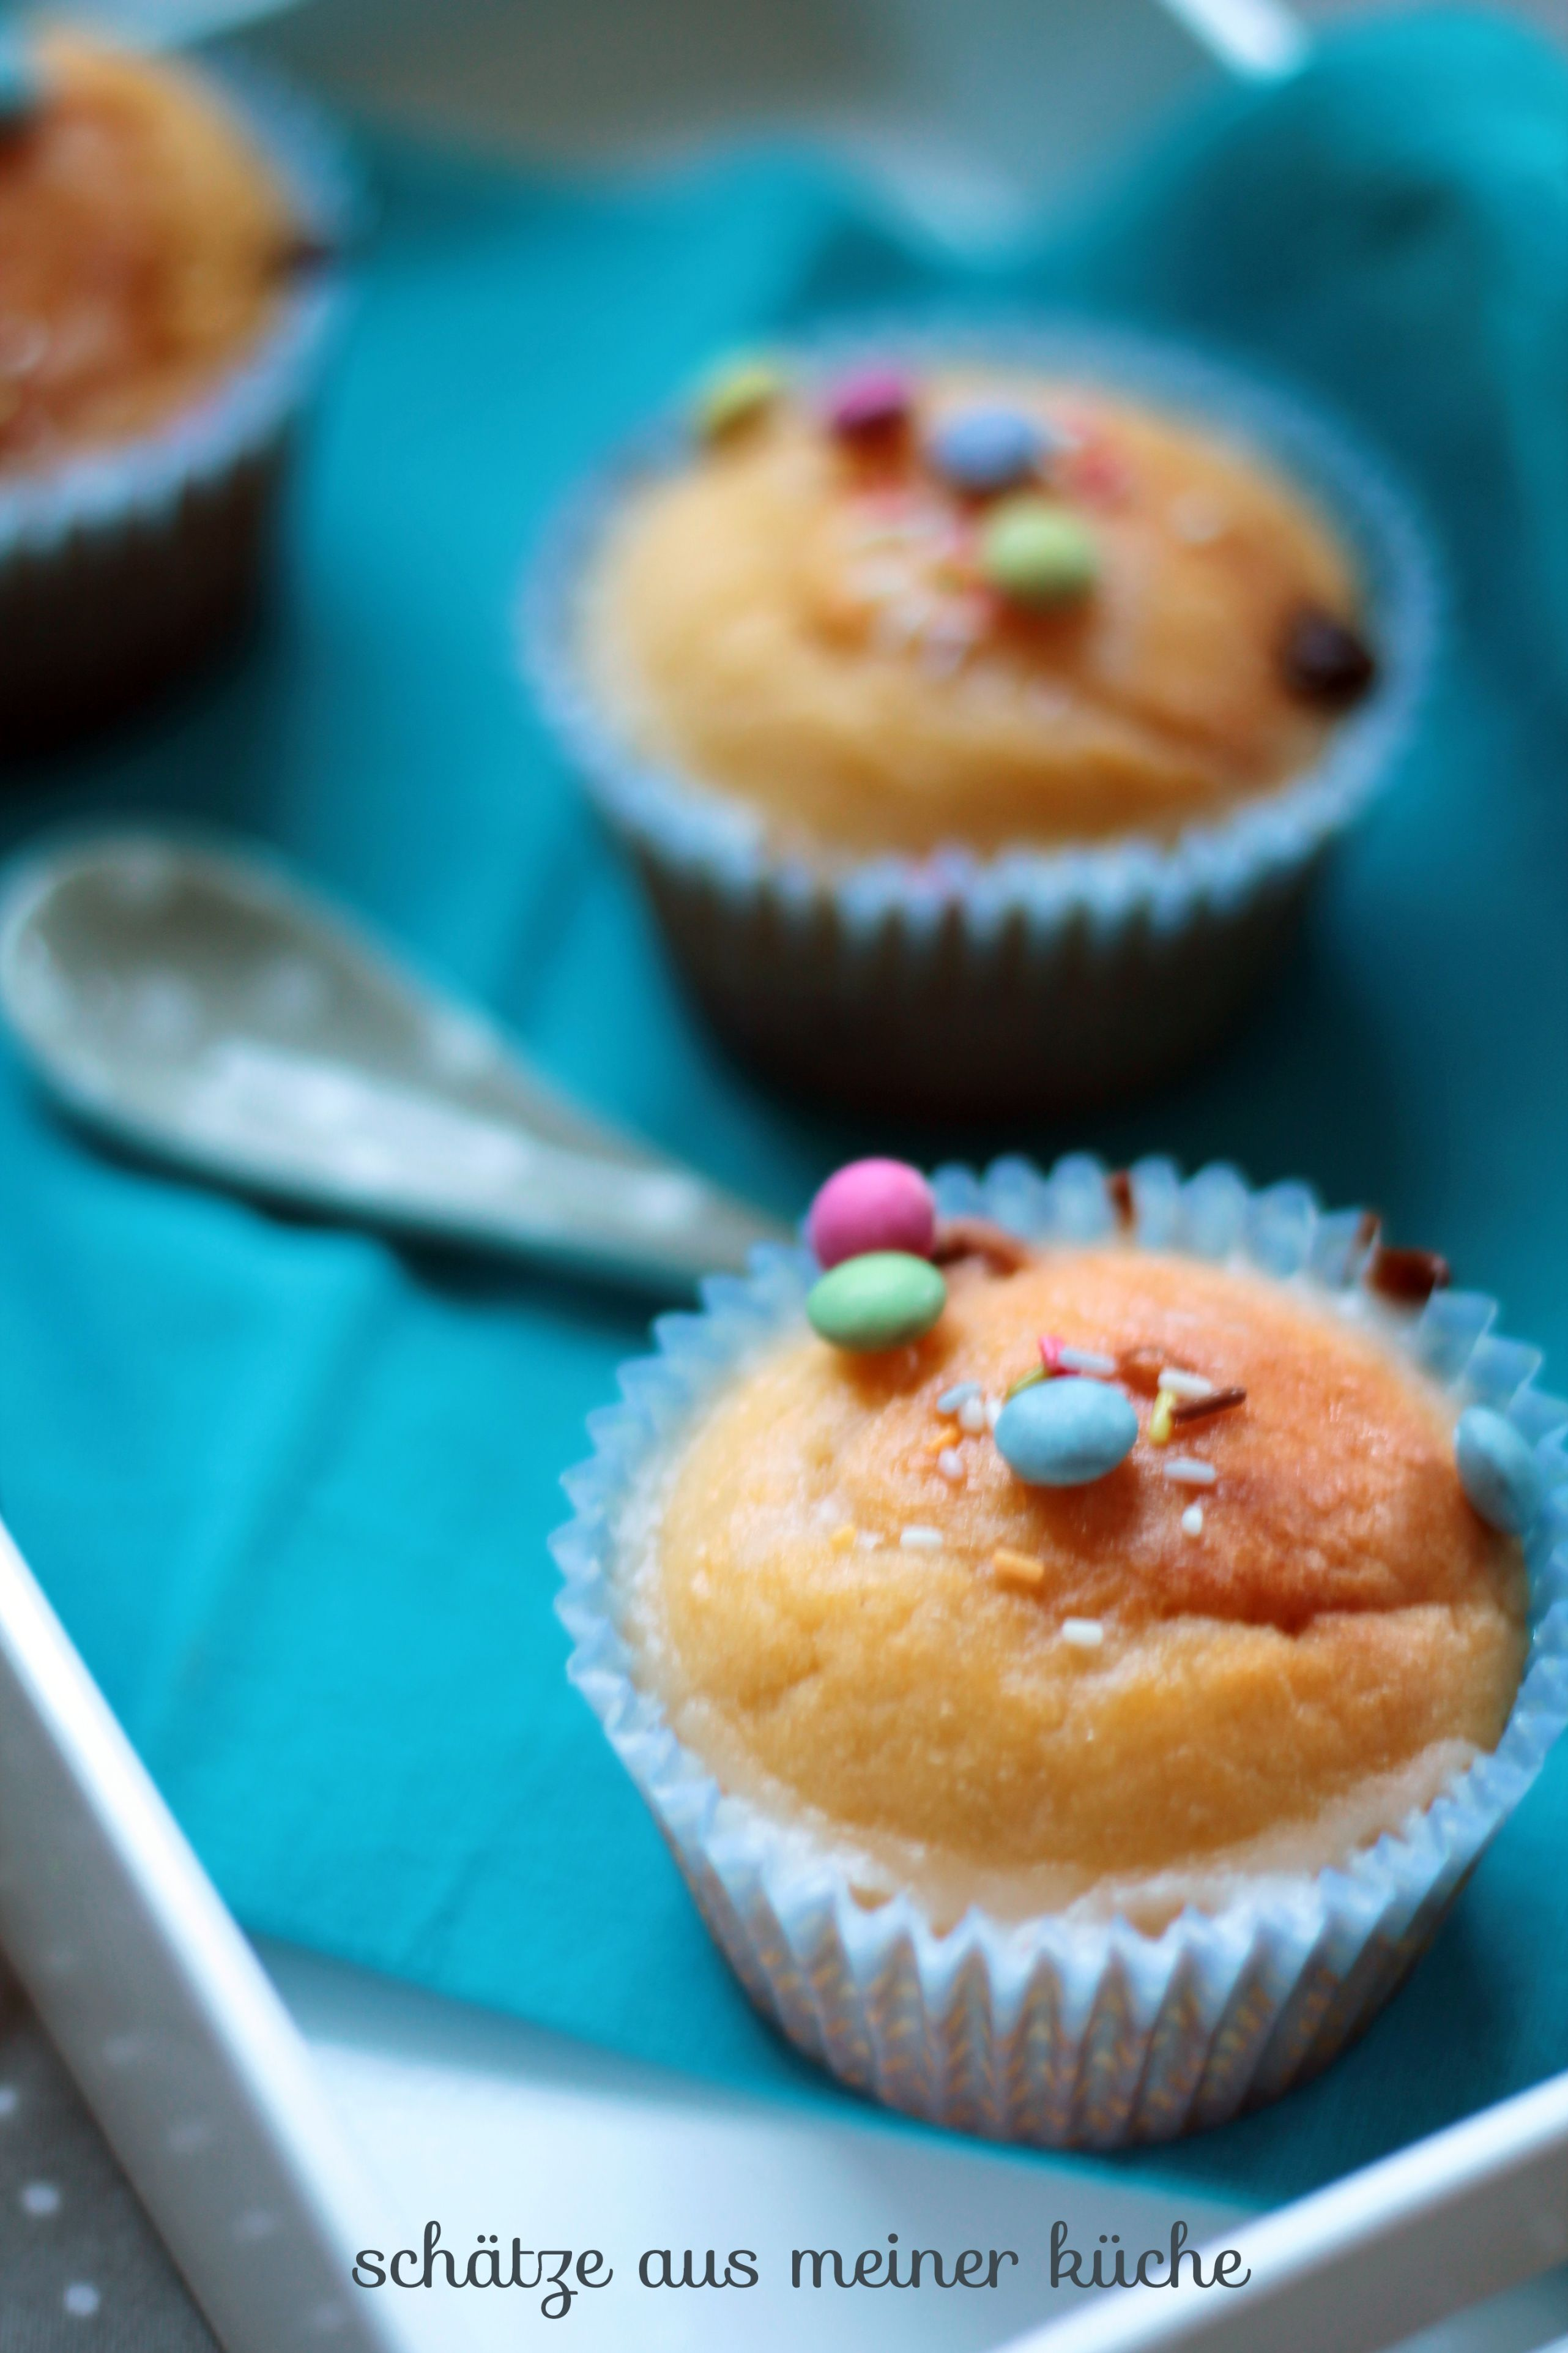 Faschings Buttermilch-Muffins